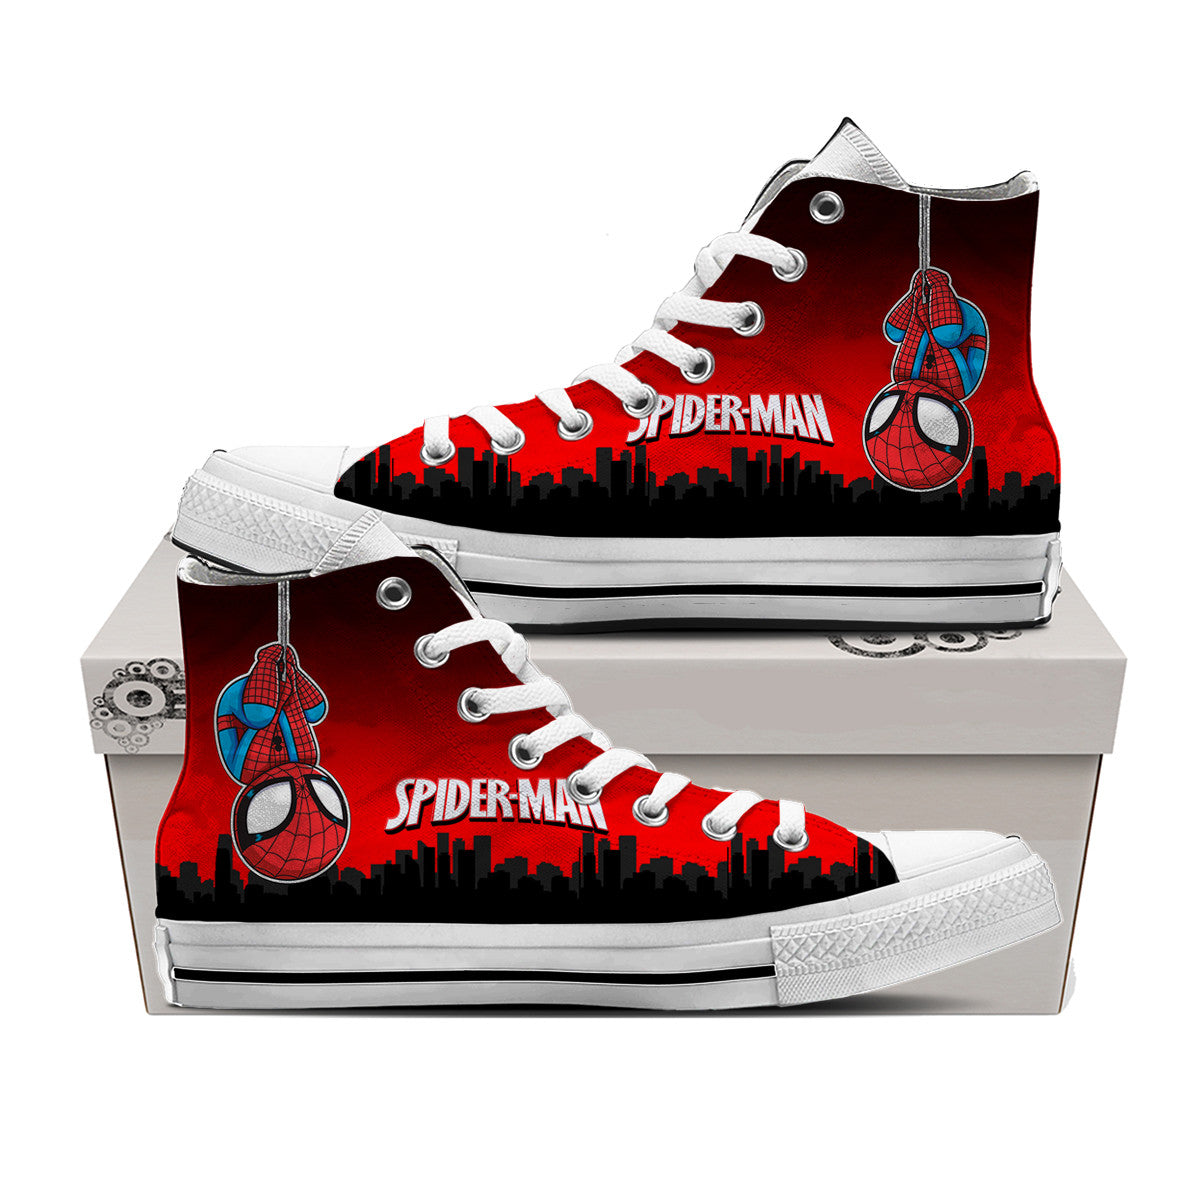 Spider man Shoes 2